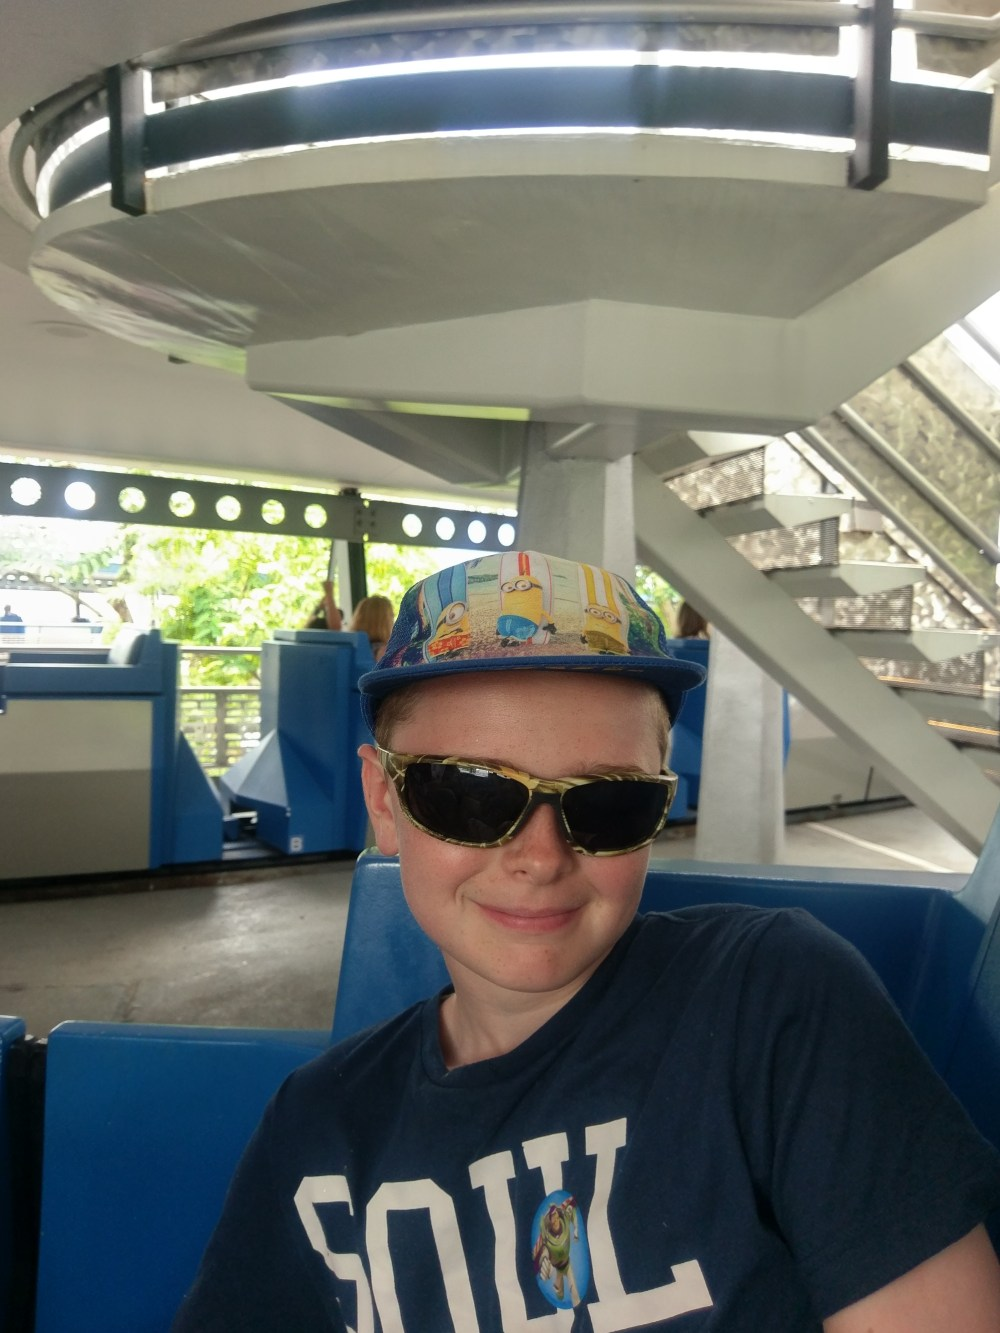 A boy in sunglasses, smiling as he sits on a Disney ride